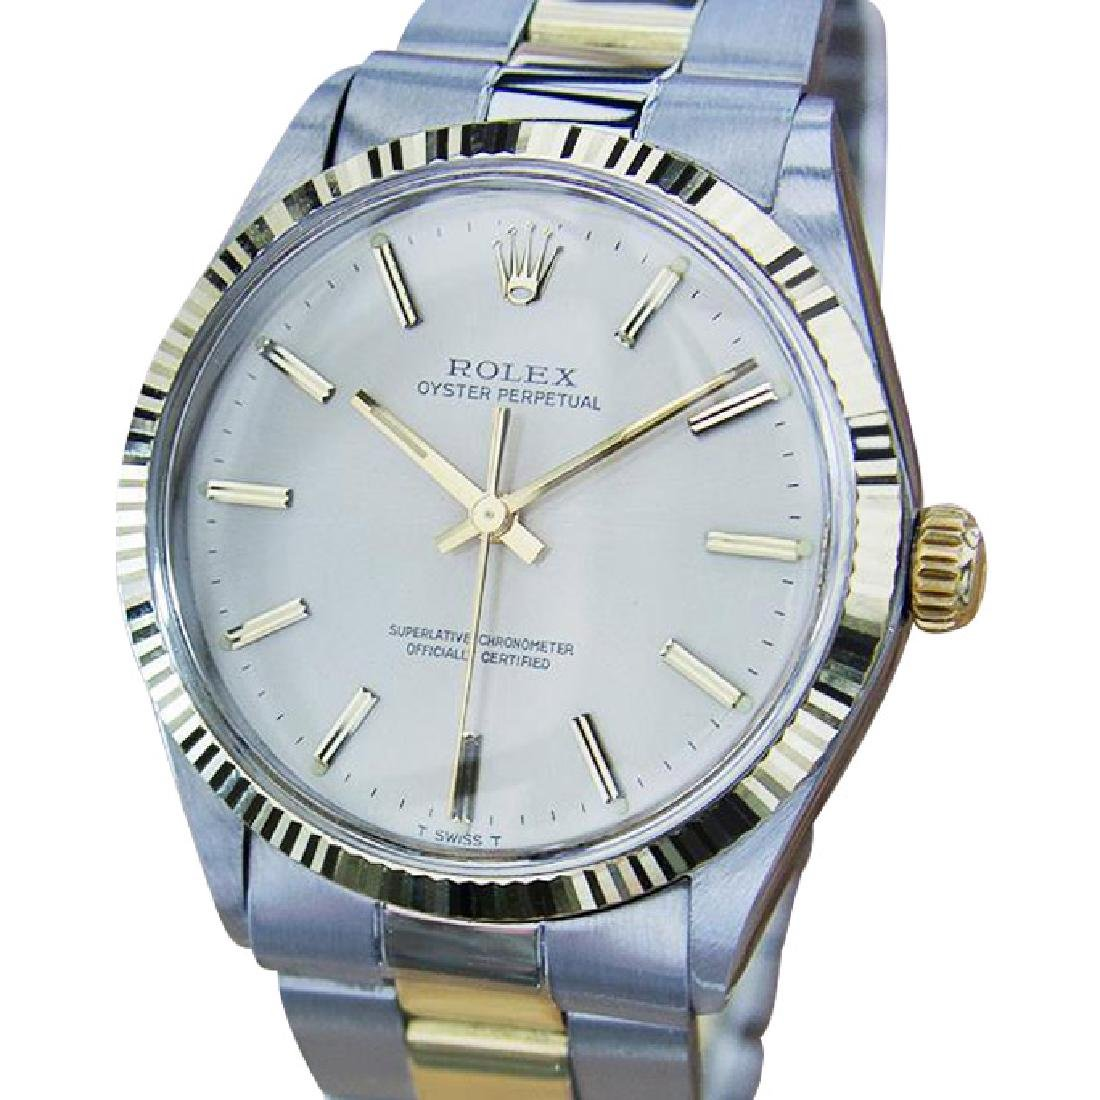 ROLEX | Oyster Perpetual | 1967